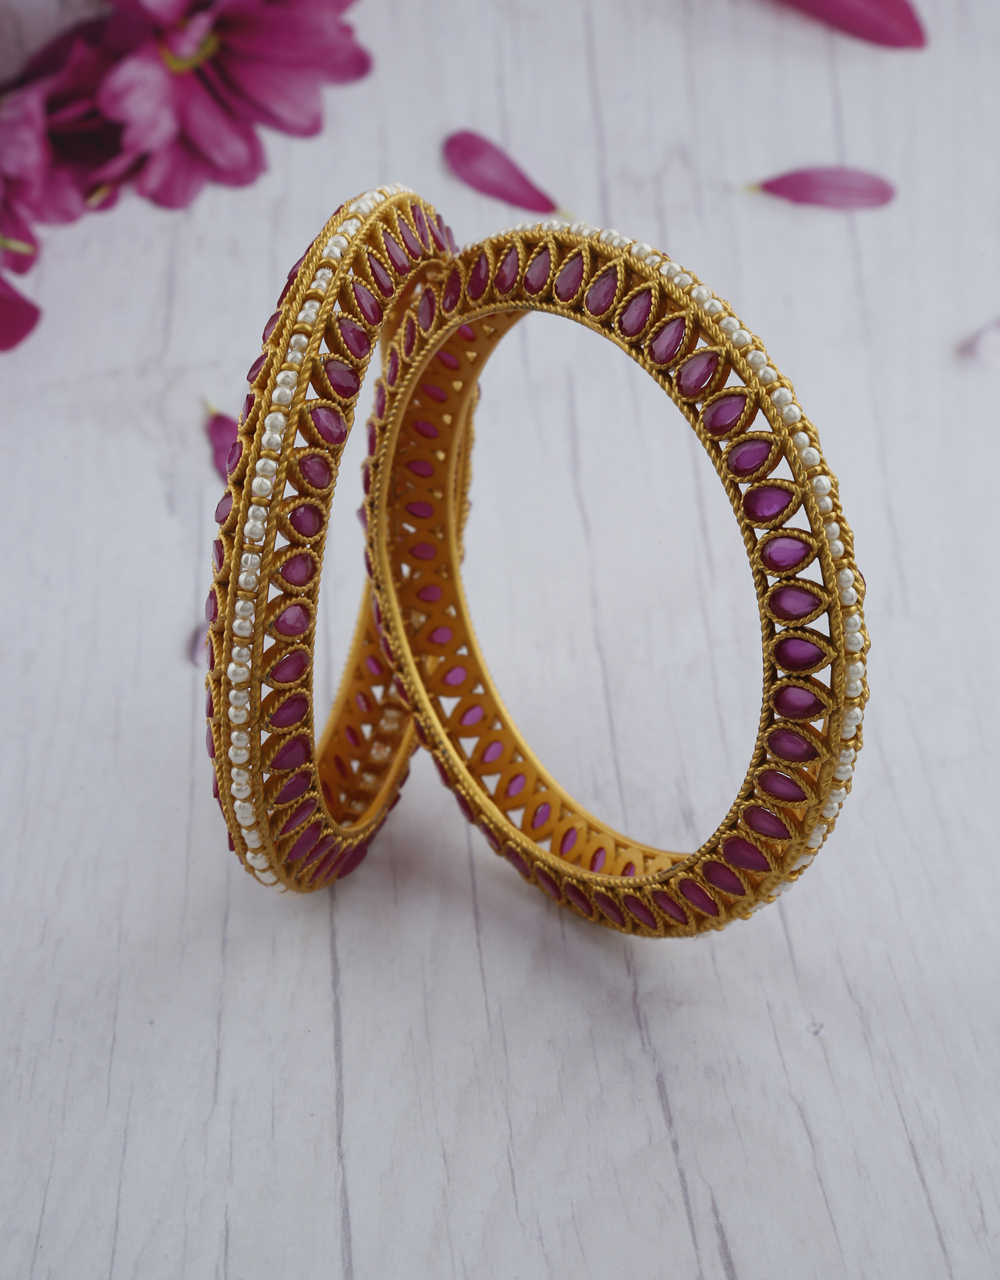 DROP SHAPE DESIGNER DECKED WITH DELICATE PEARL AND DECKED WITH PINK STONES BANGLES FOR WOMEN